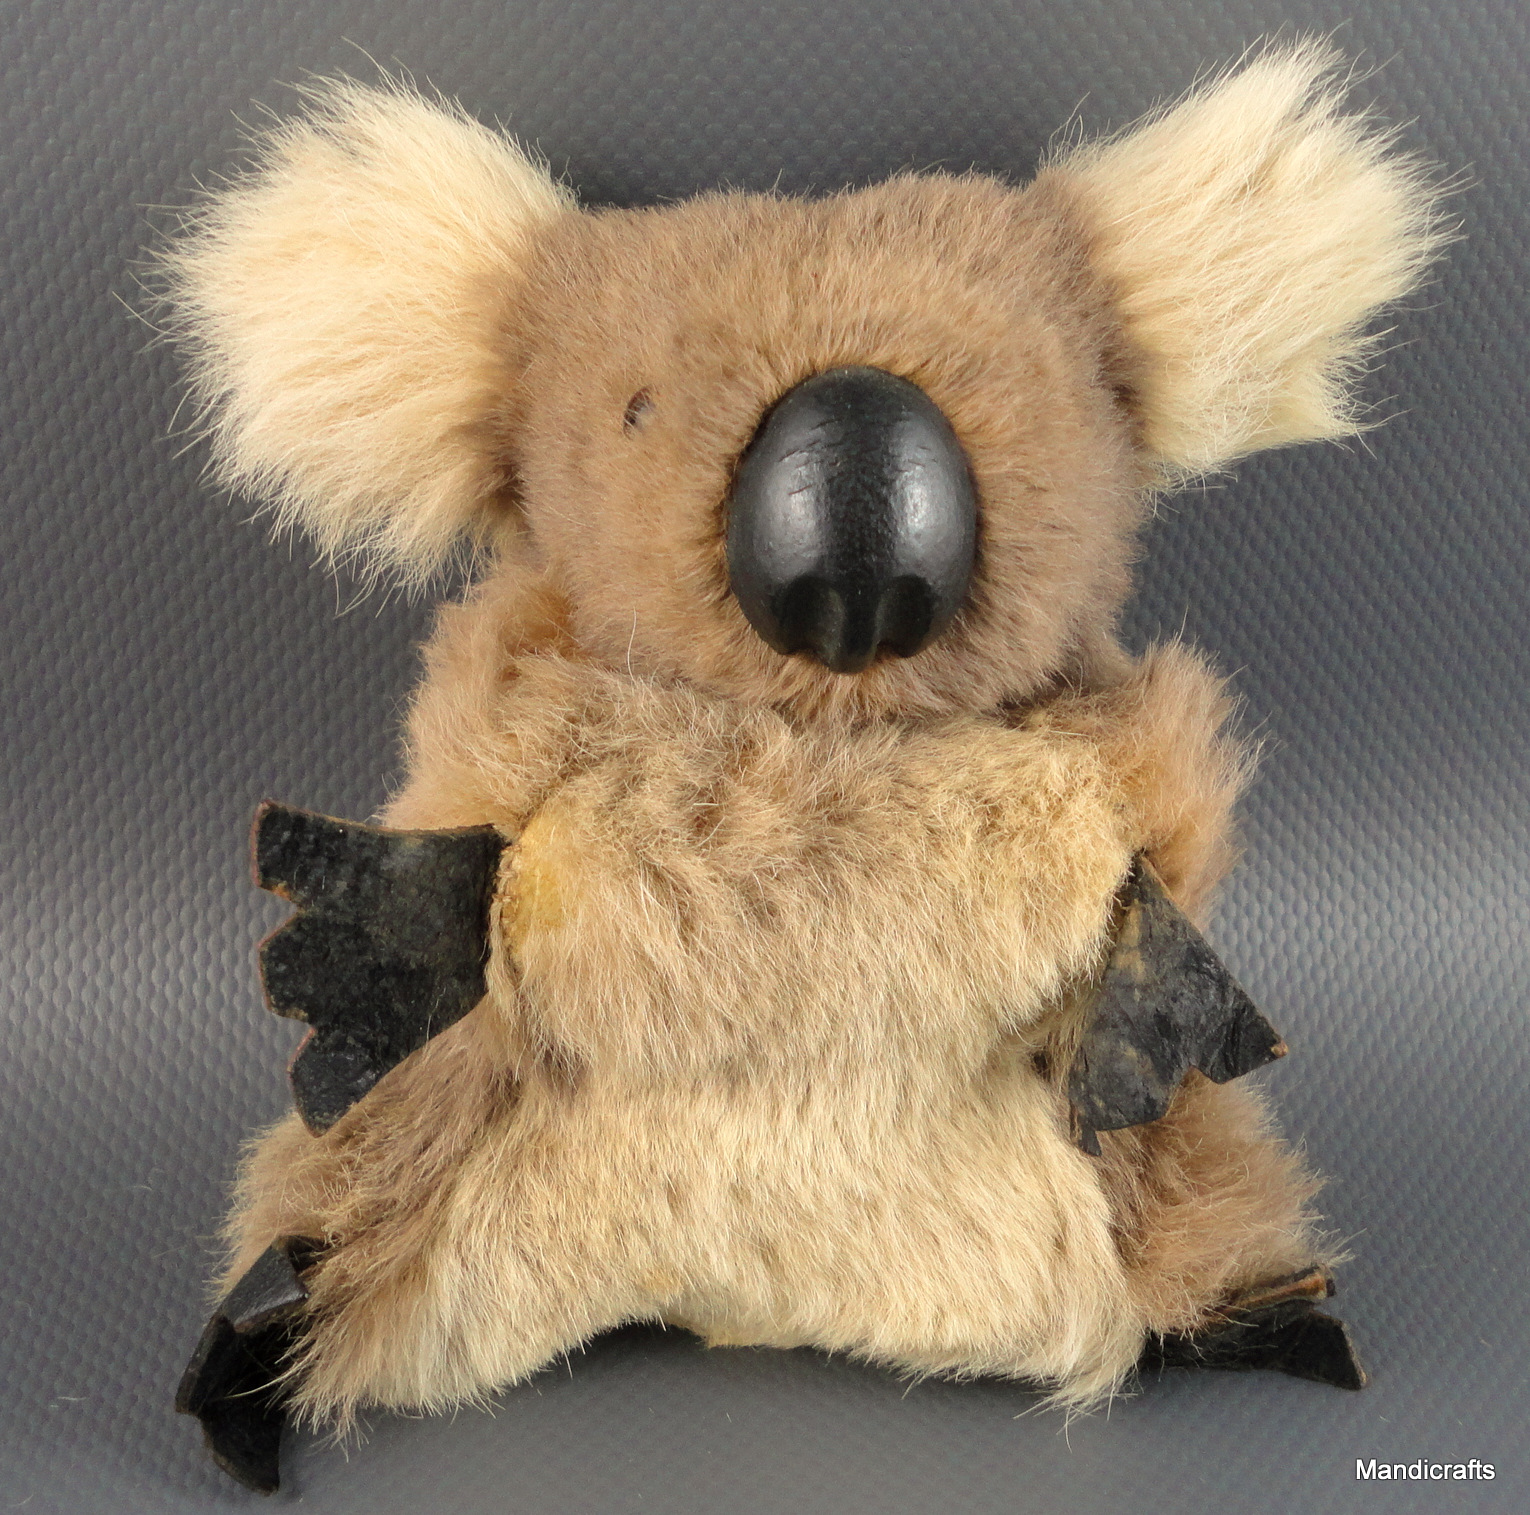 Australian Made Teddy Bears Genuine Fur Koala Collectible Bears And Other Stuffed